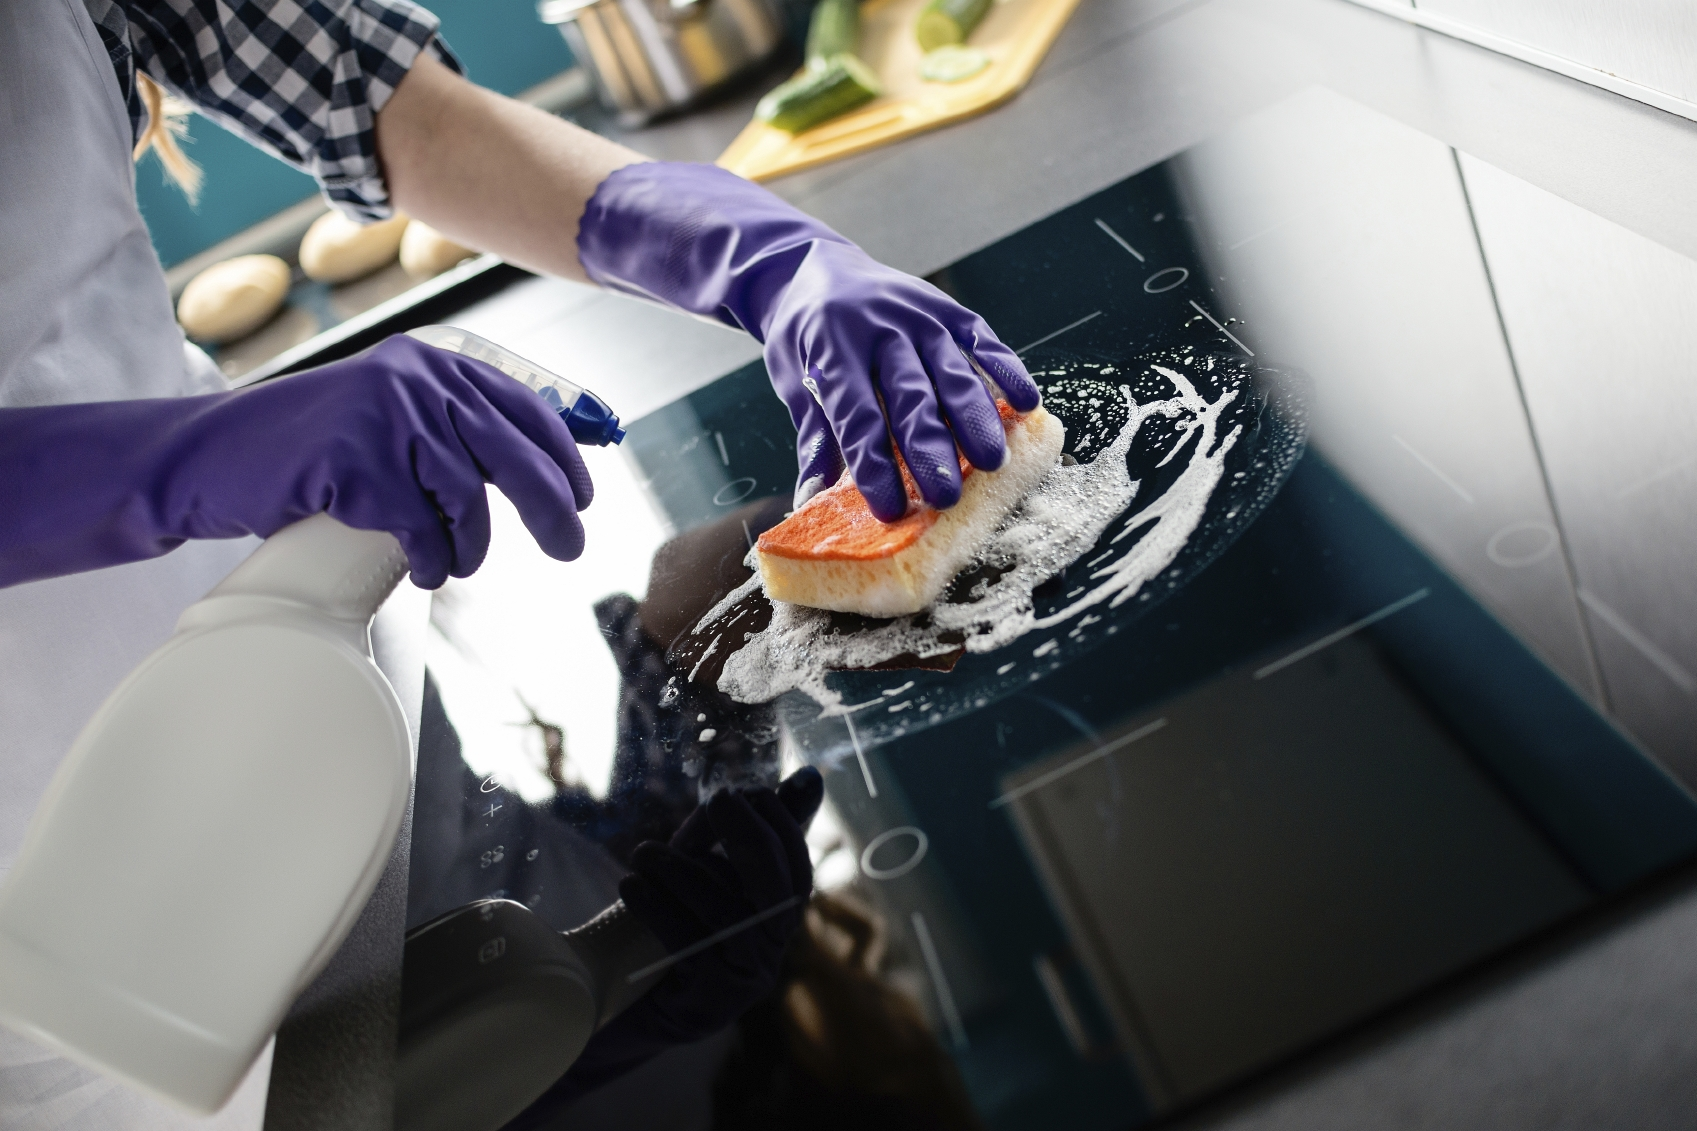 Woman's hands cleaning kitchen top in purple rubber protective gloves